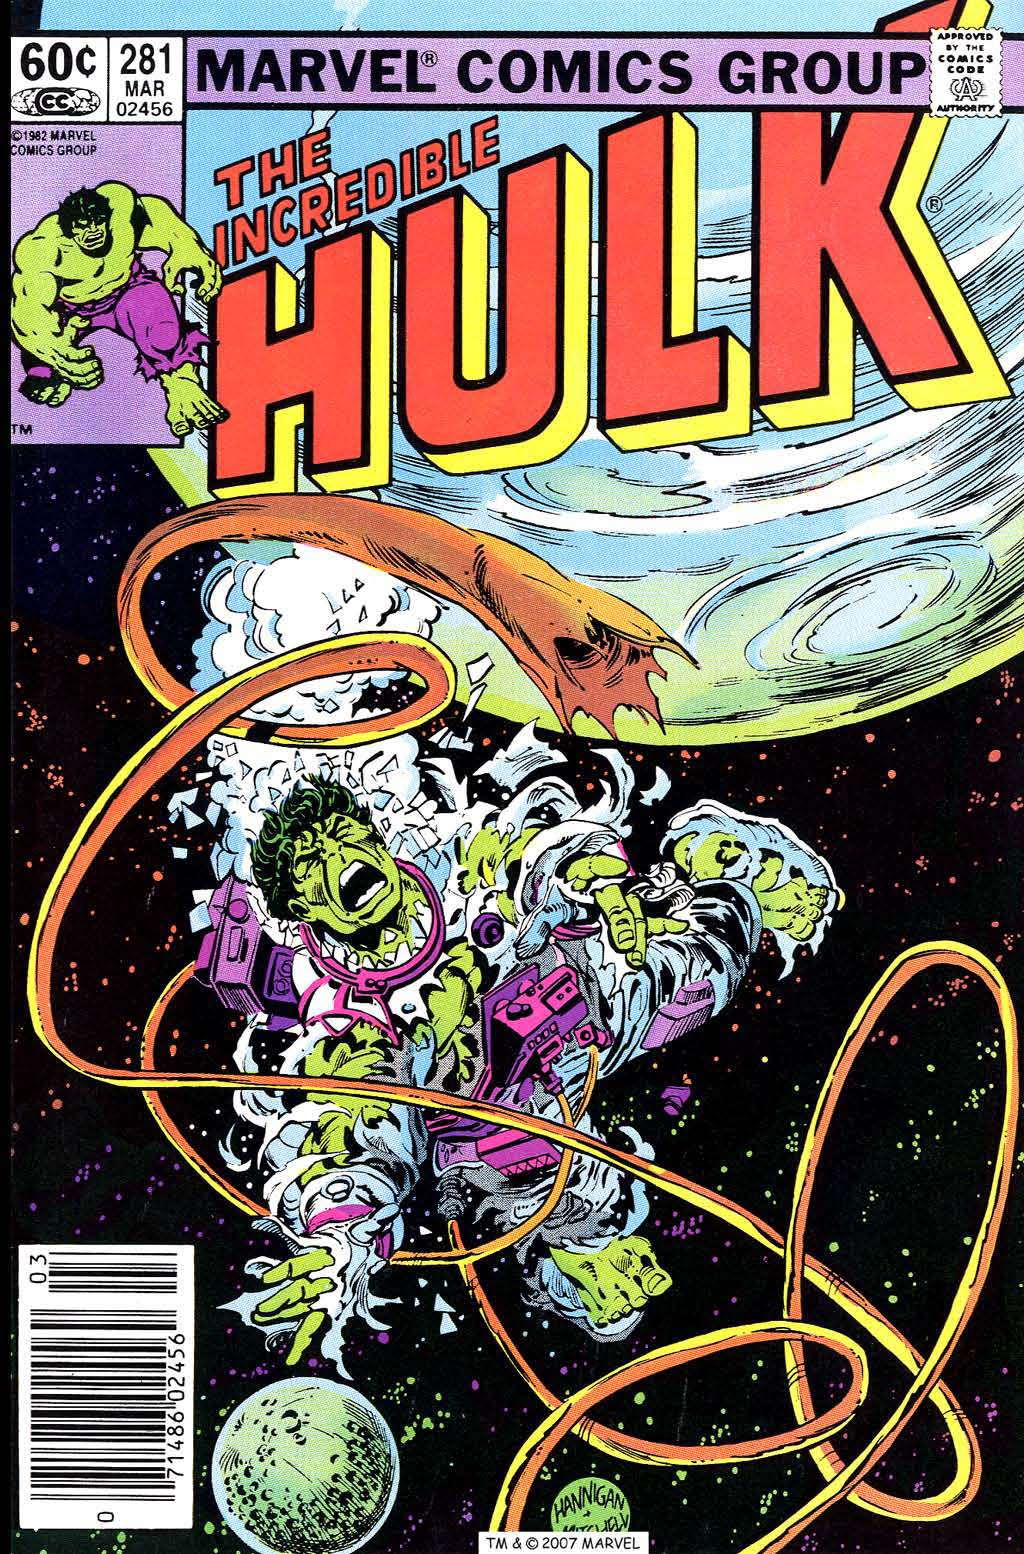 Incredible Hulk (1968) #281, cover penciled by Ed Hannigan & inked by Steve Mitchell.